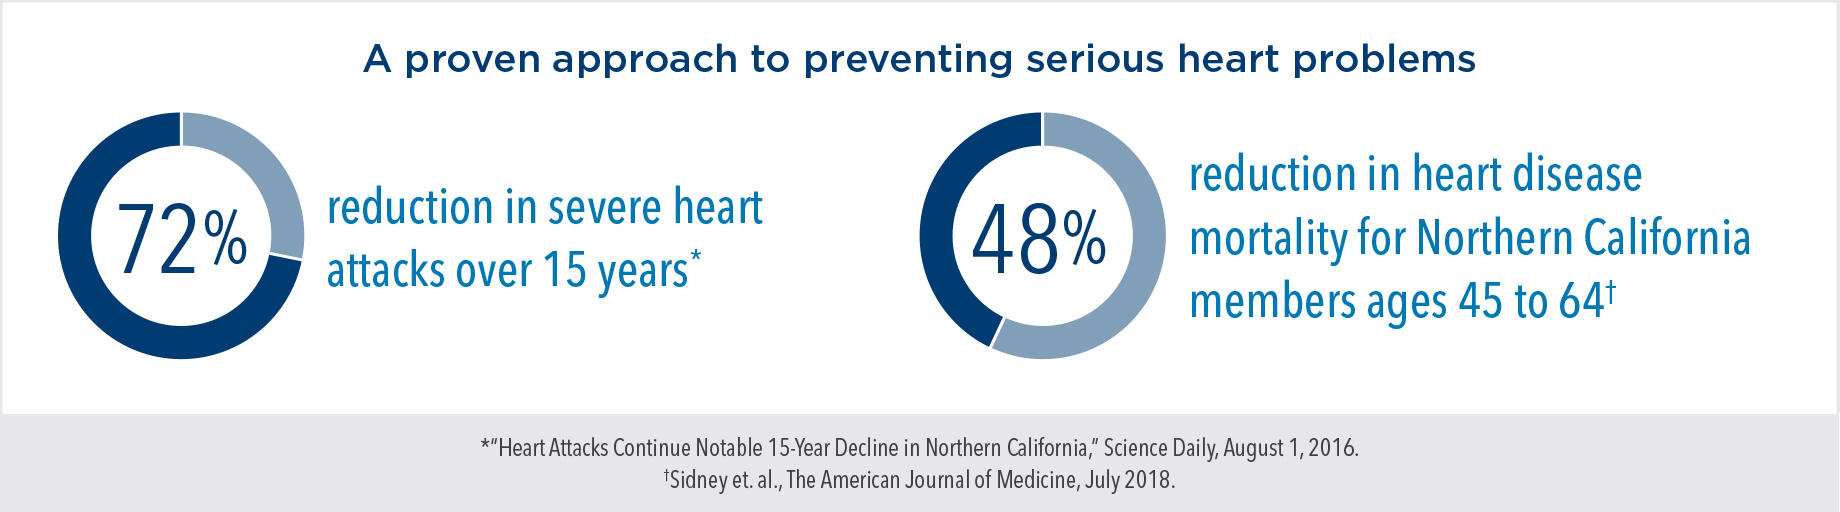 A proven approach to preventing serious heart problems: 72% reduction in severe heart attacks over 15 years; 48% reduction in heart disease mortality for Northern California members ages 45 to 64.